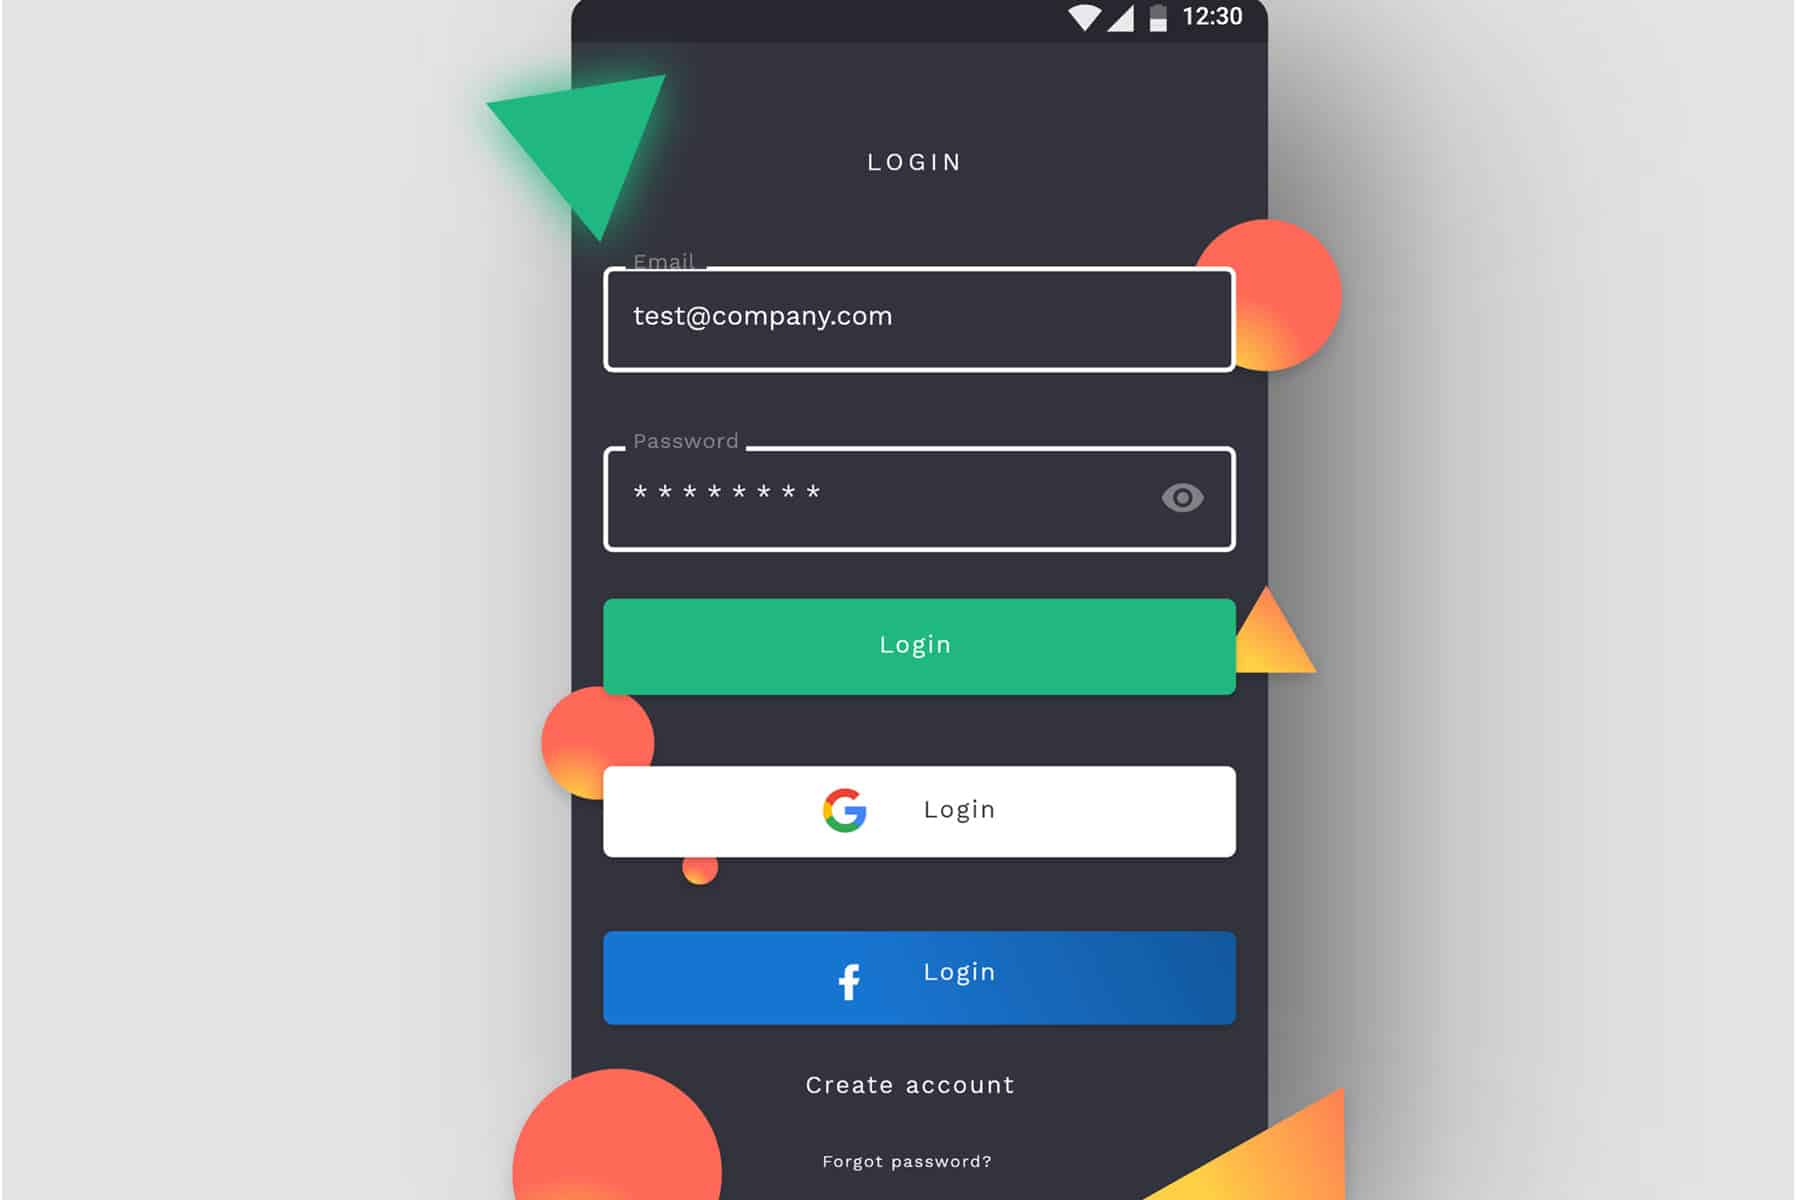 app-login-design-instagram